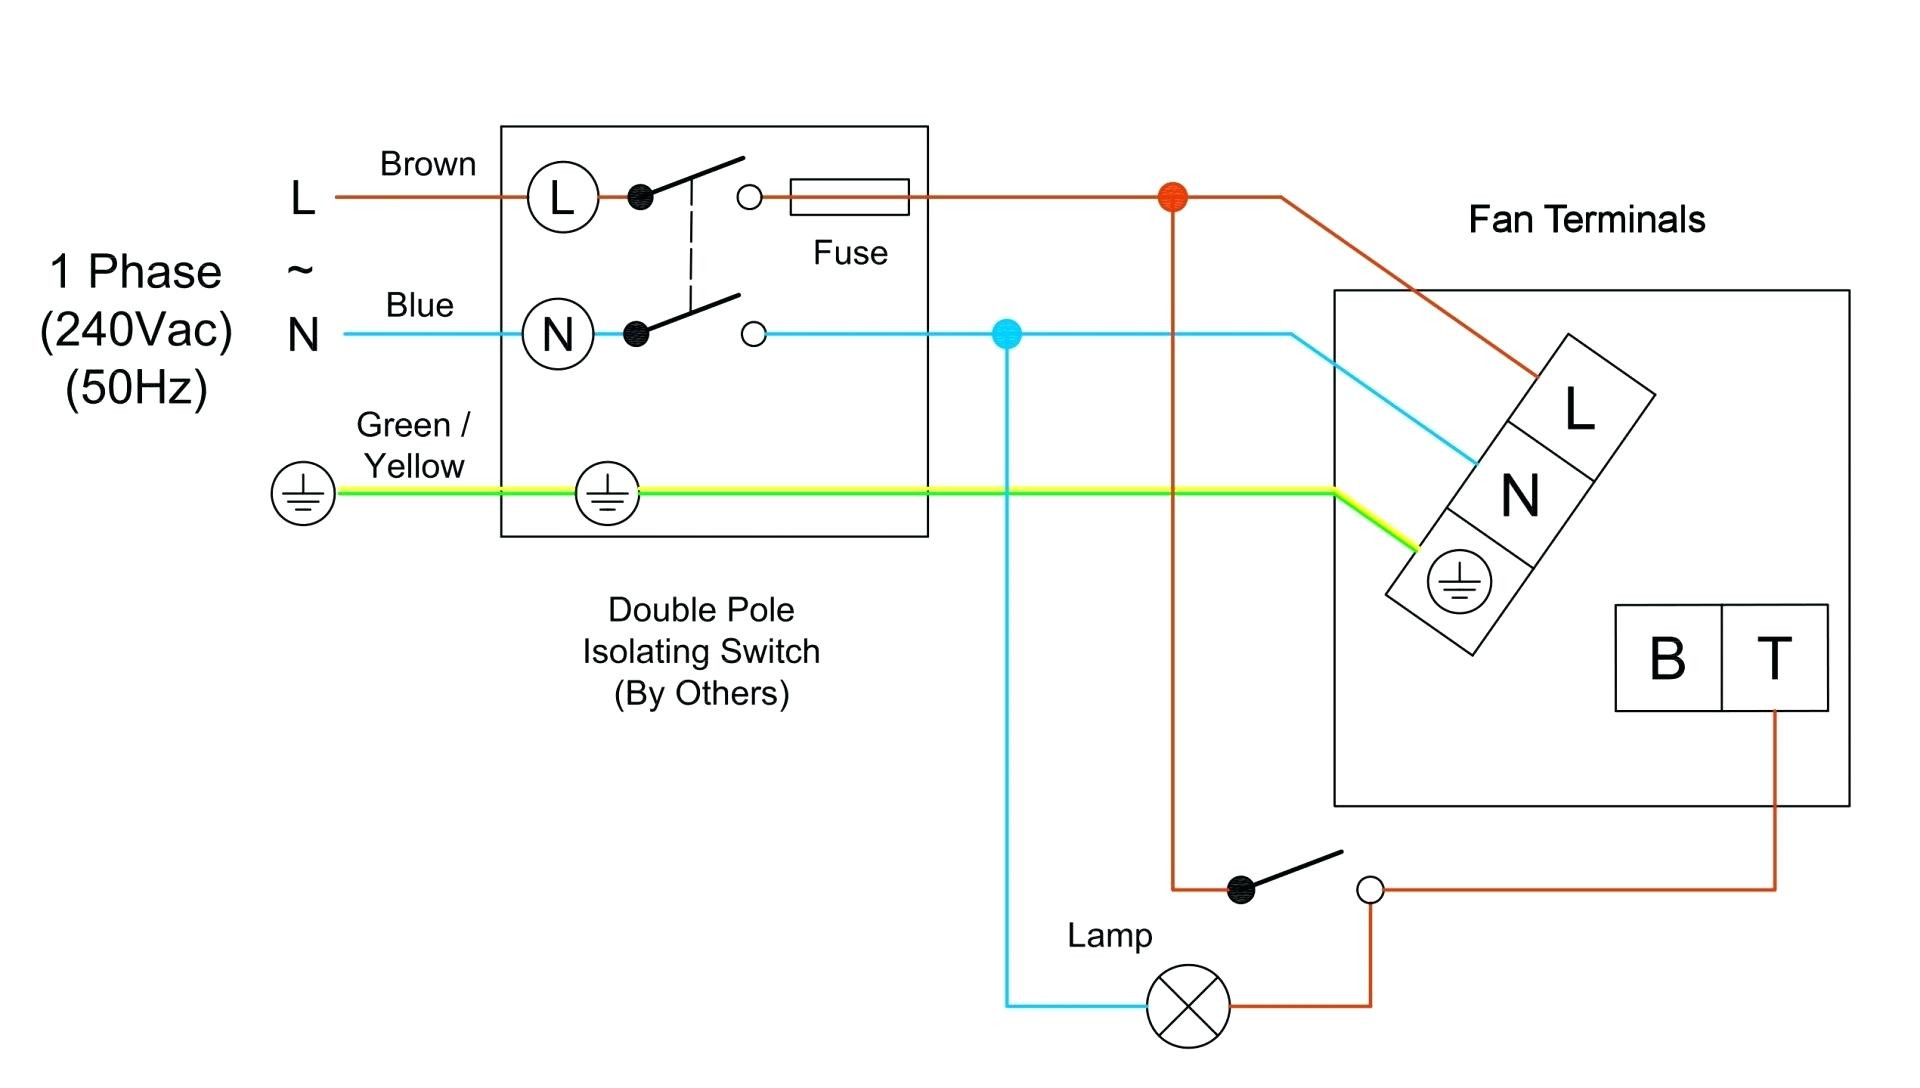 bathroom fan with timer wiring diagram ba falcon ignition barrel paragon 8141 00 download